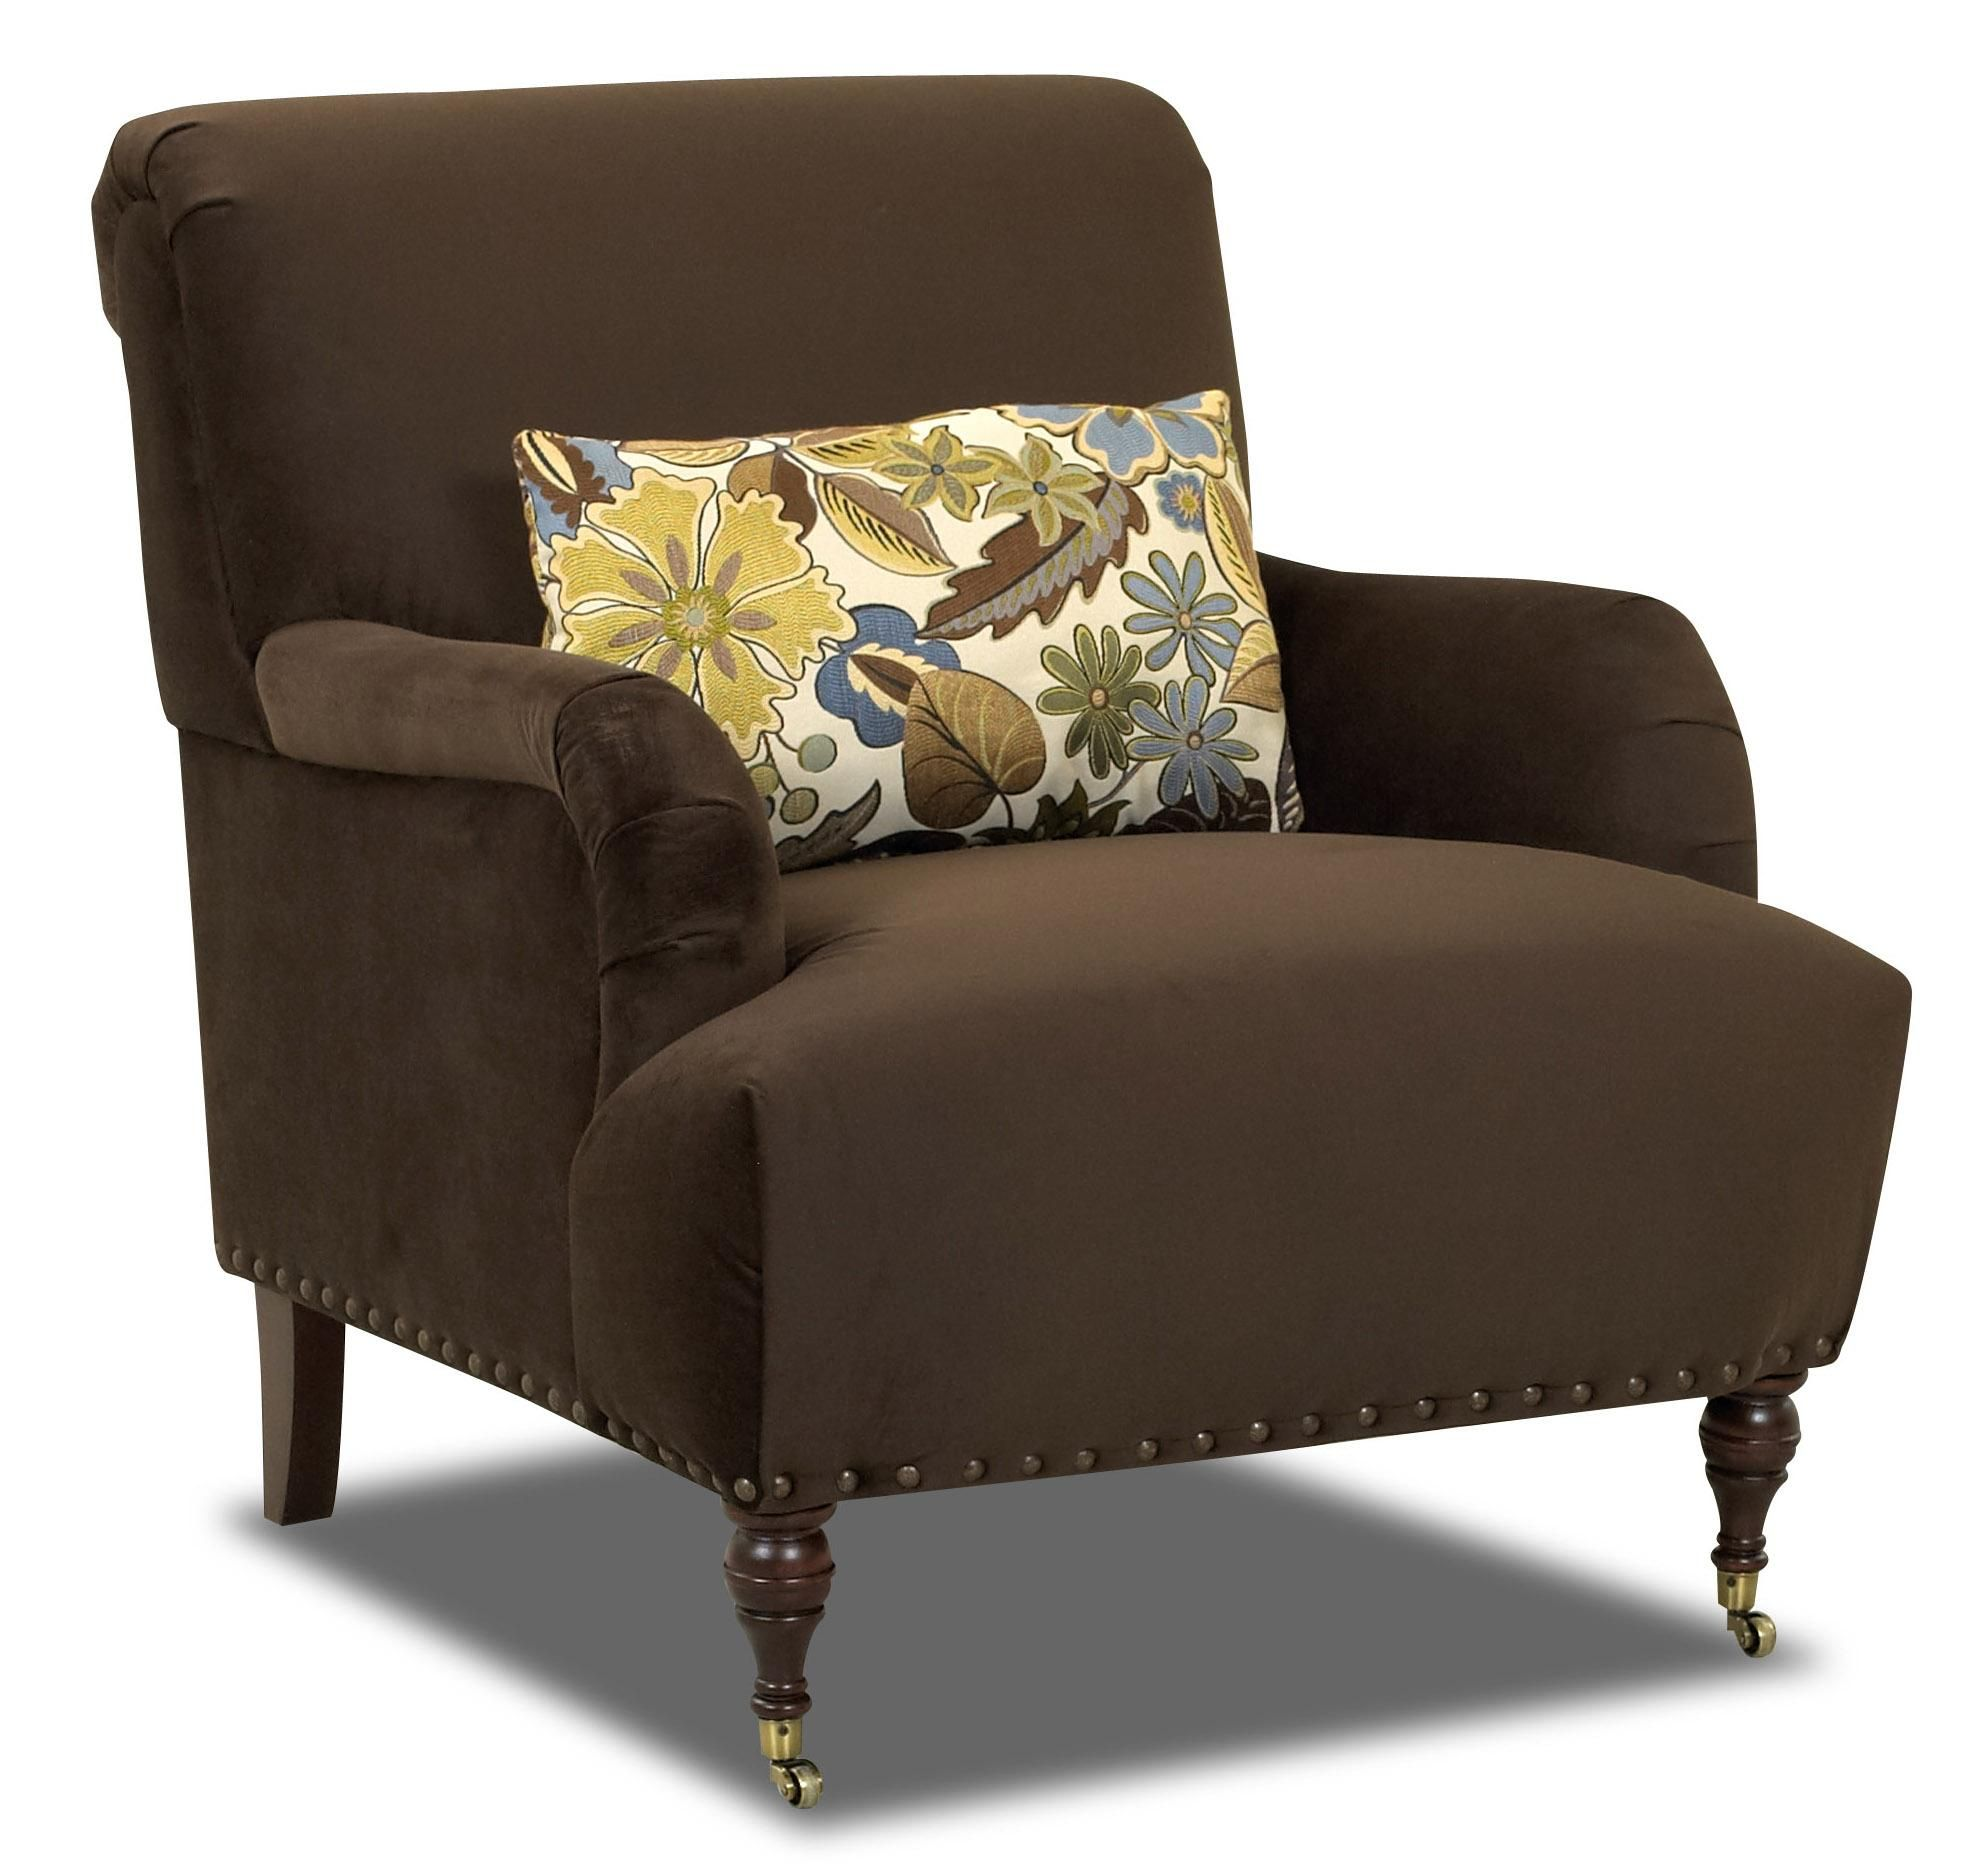 Charmant Dapper Accent Chair By Simple Elegance. Like It In Tan For Living Room